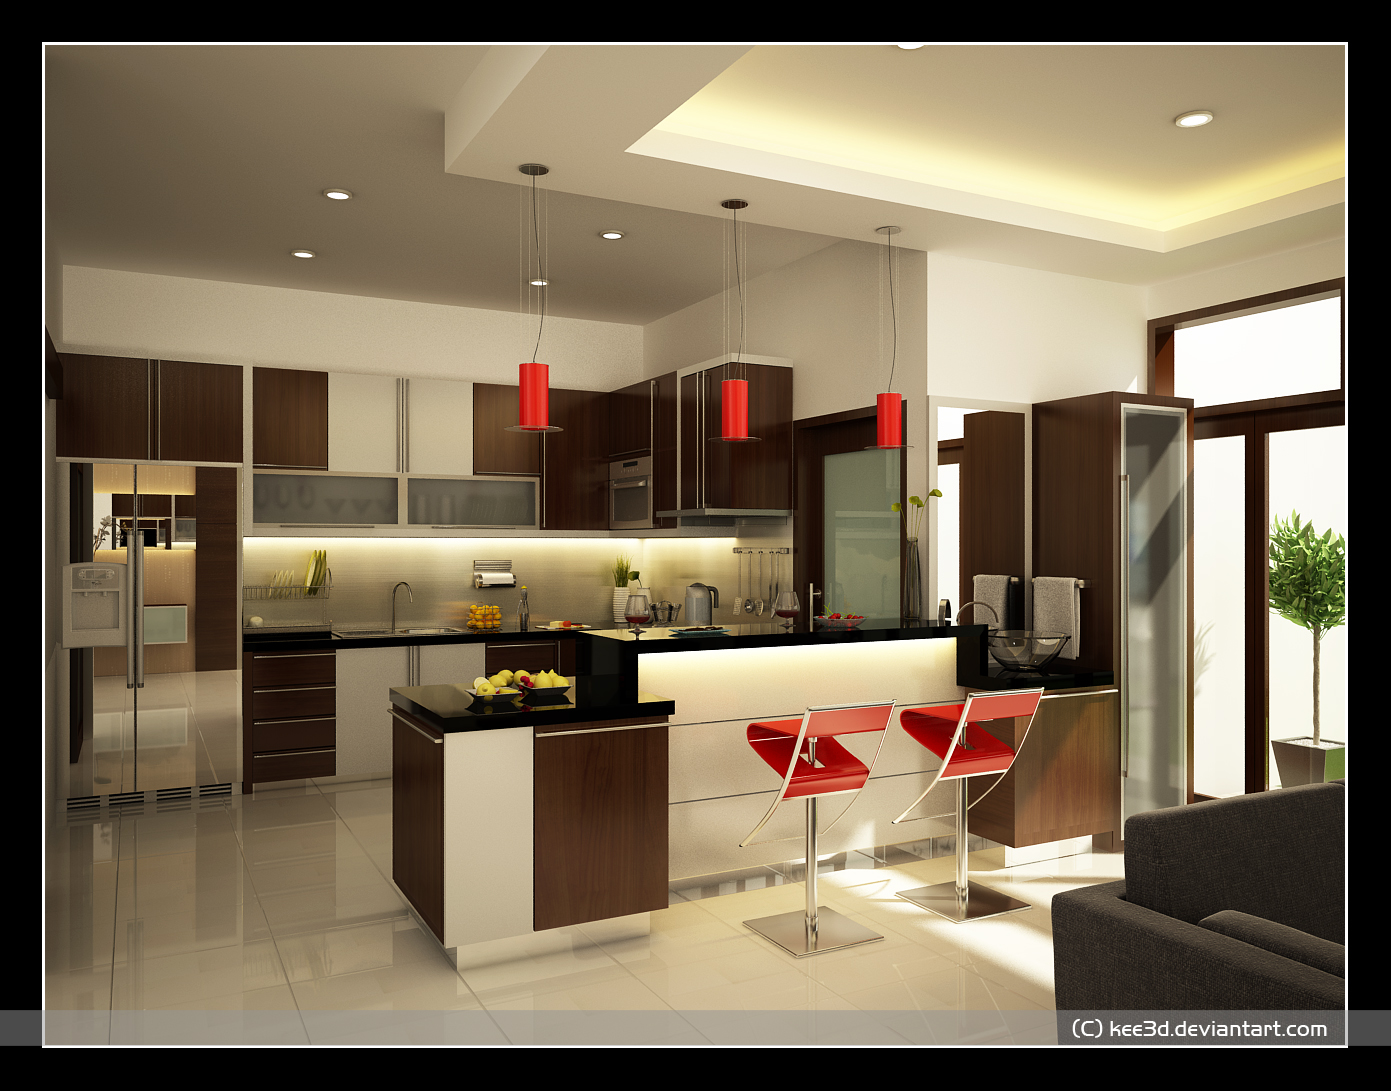 Kitchen design ideas for Kitchen designs pics